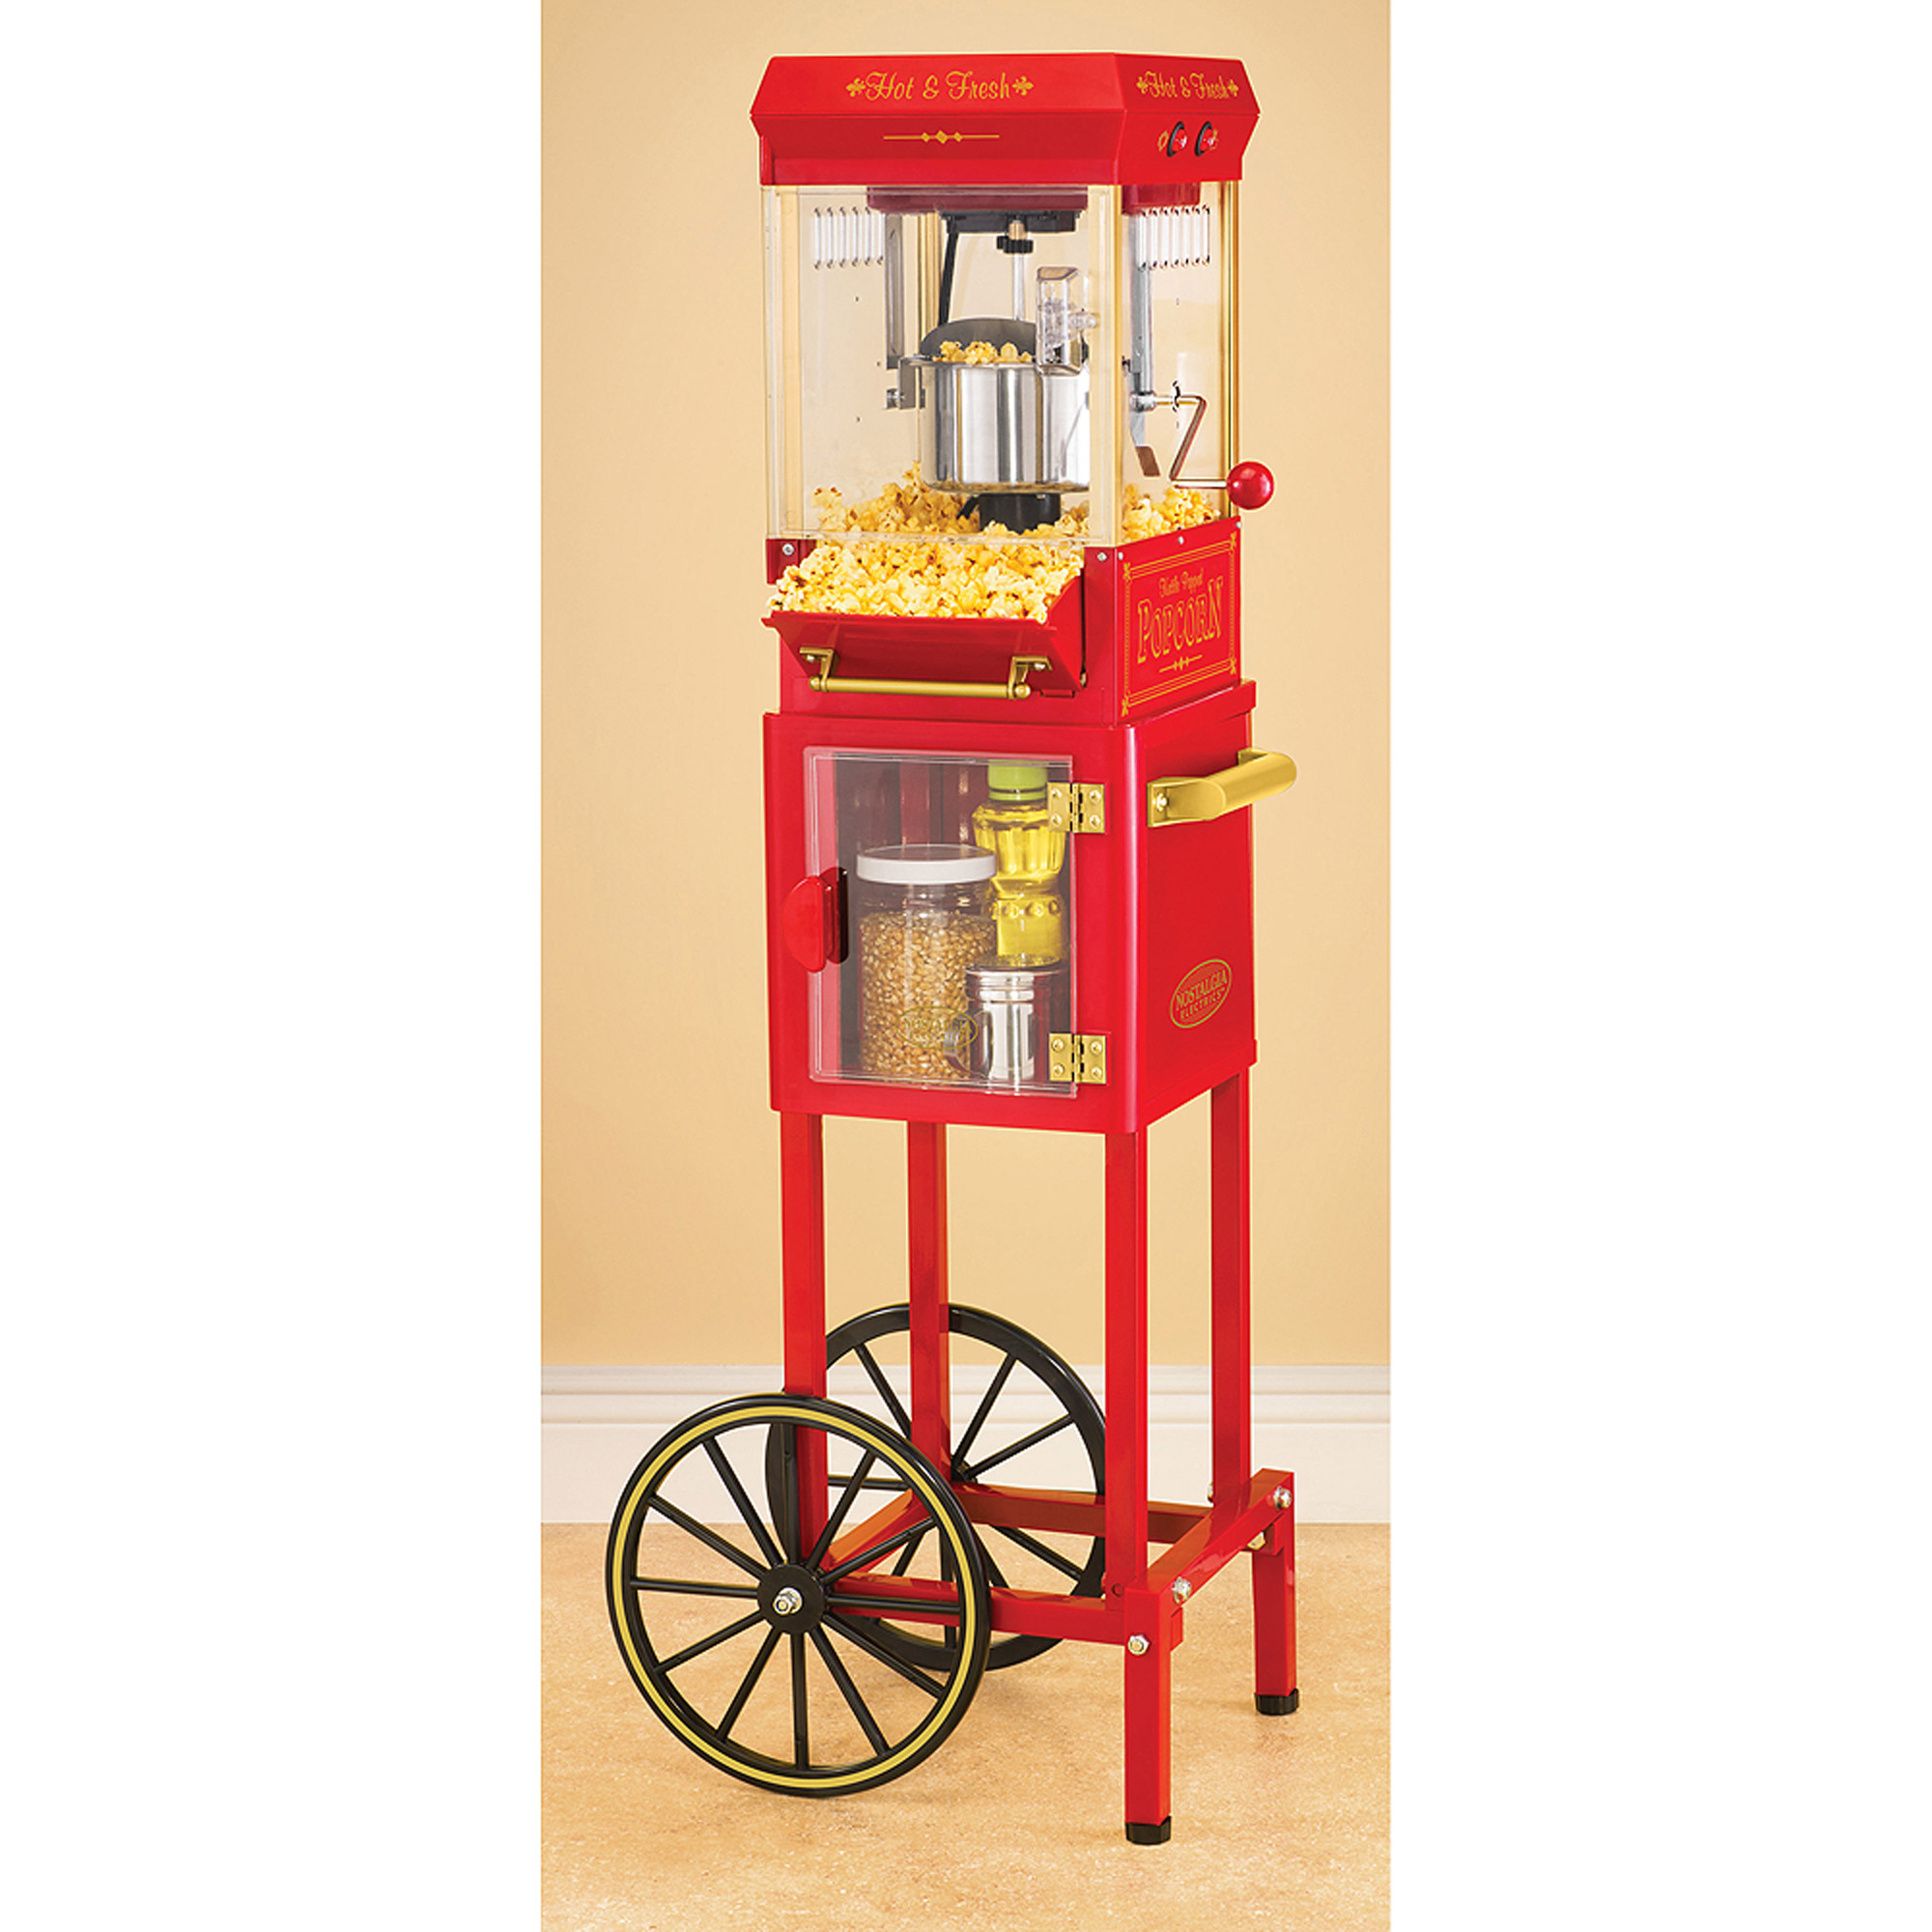 Nostalgia Old-Fashioned Kettle Popcorn Cart, Red